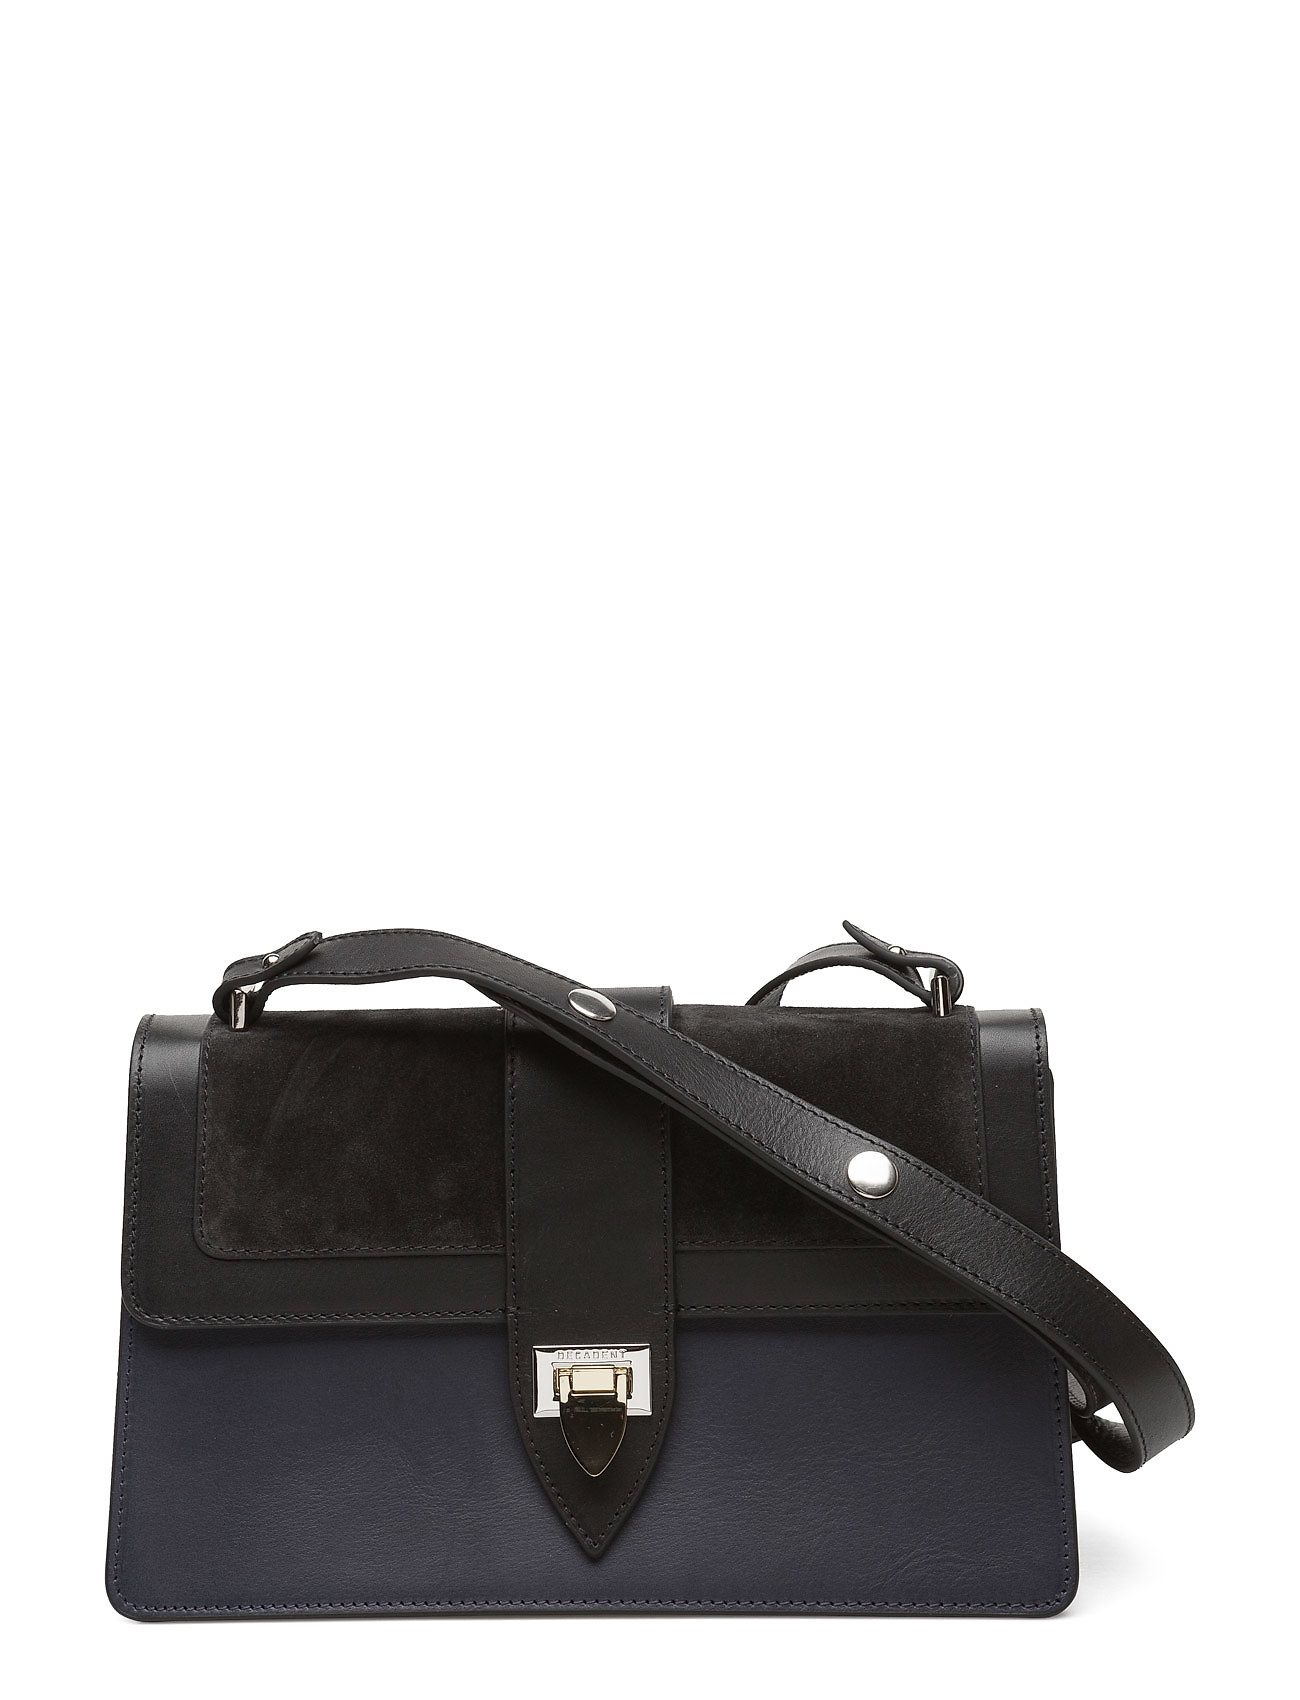 Decadent Aya shoulder bag